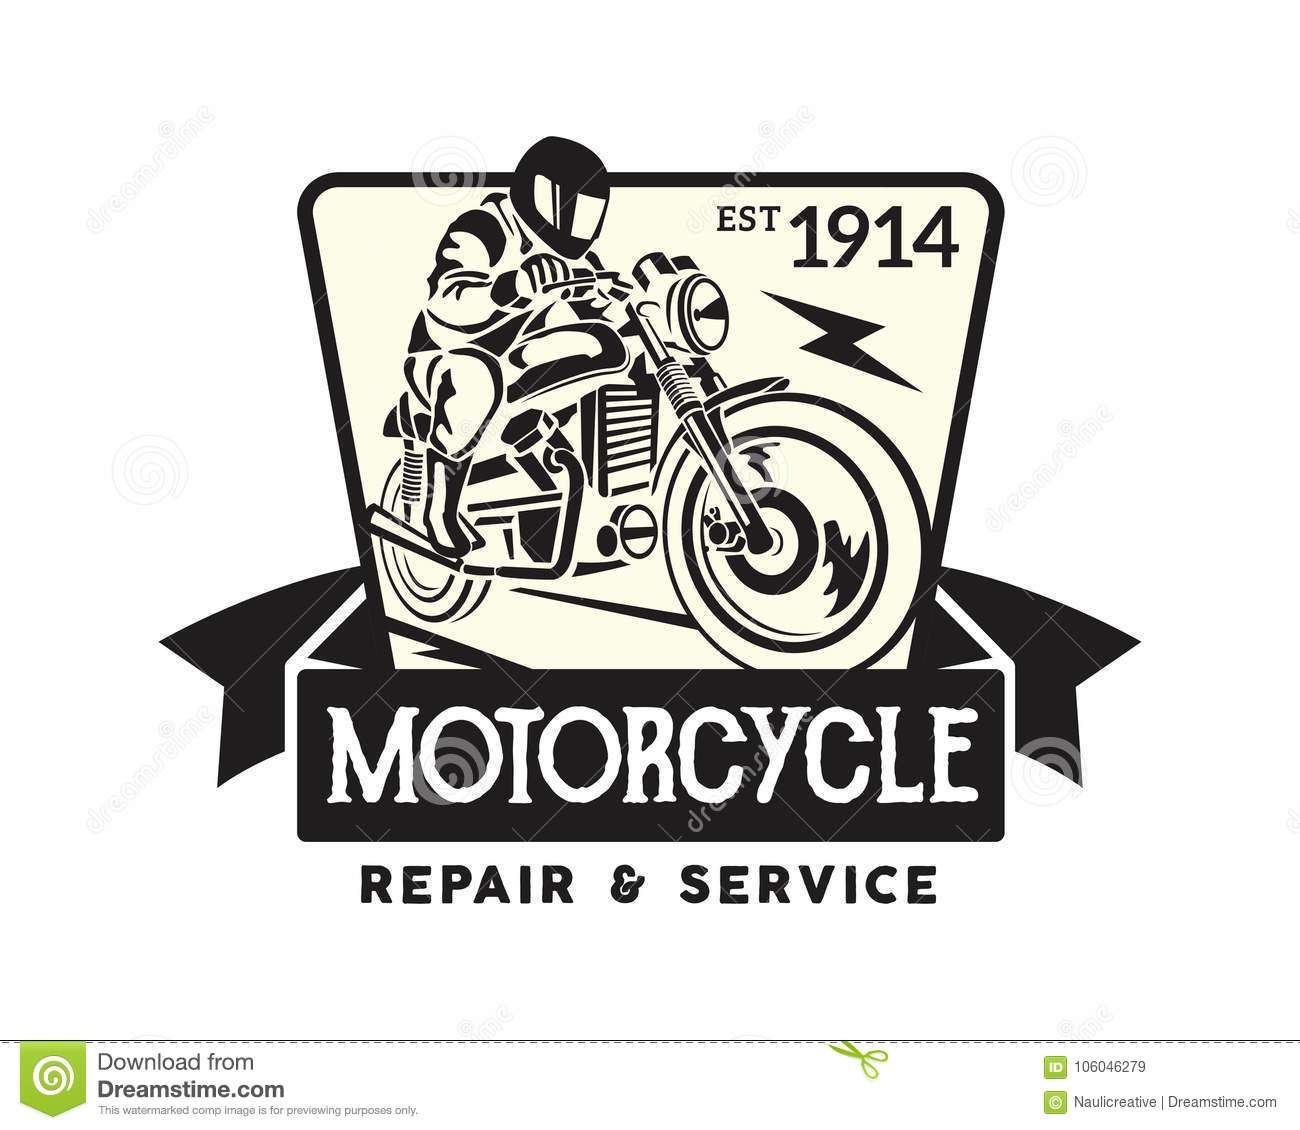 70171cc67 Vintage motorcycle logo badge illustration, suitable for t-shirt graphic,  patch, sign, and any other motorcycle related graphic.